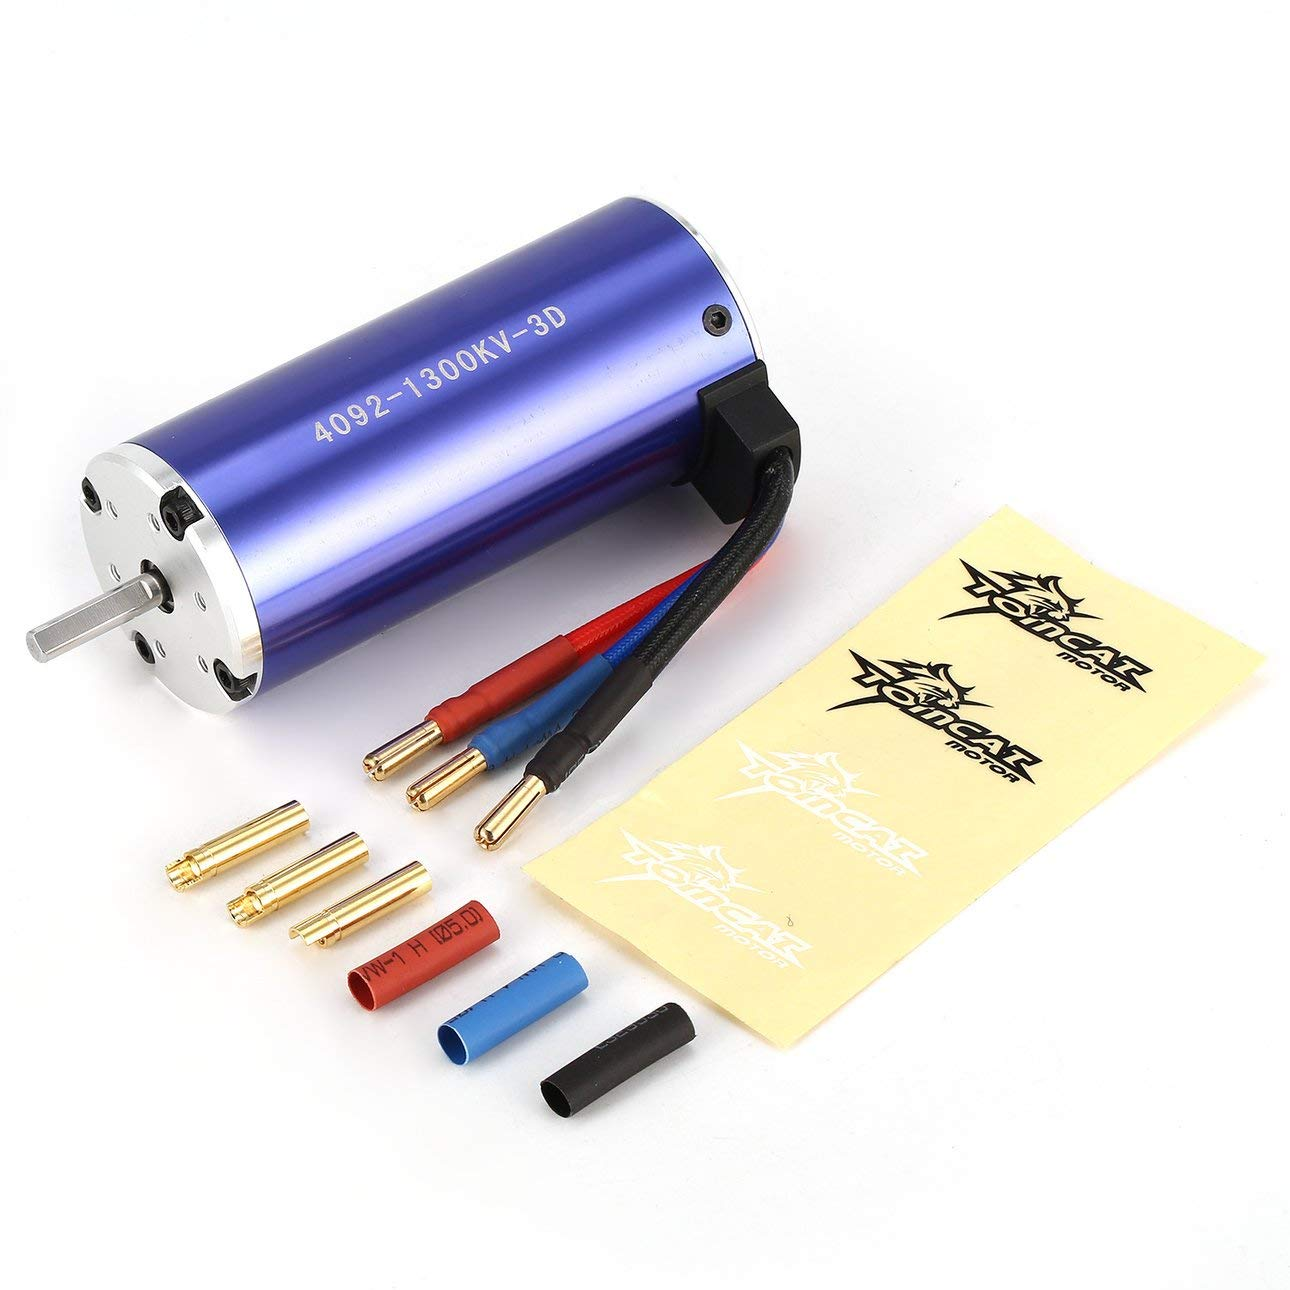 Liobaba TC-CY 4092 3D KV1300 5mm Sensorless Brushless Motor 1/8 Bigfoot RC Car Model Spare Parts Accessories Component